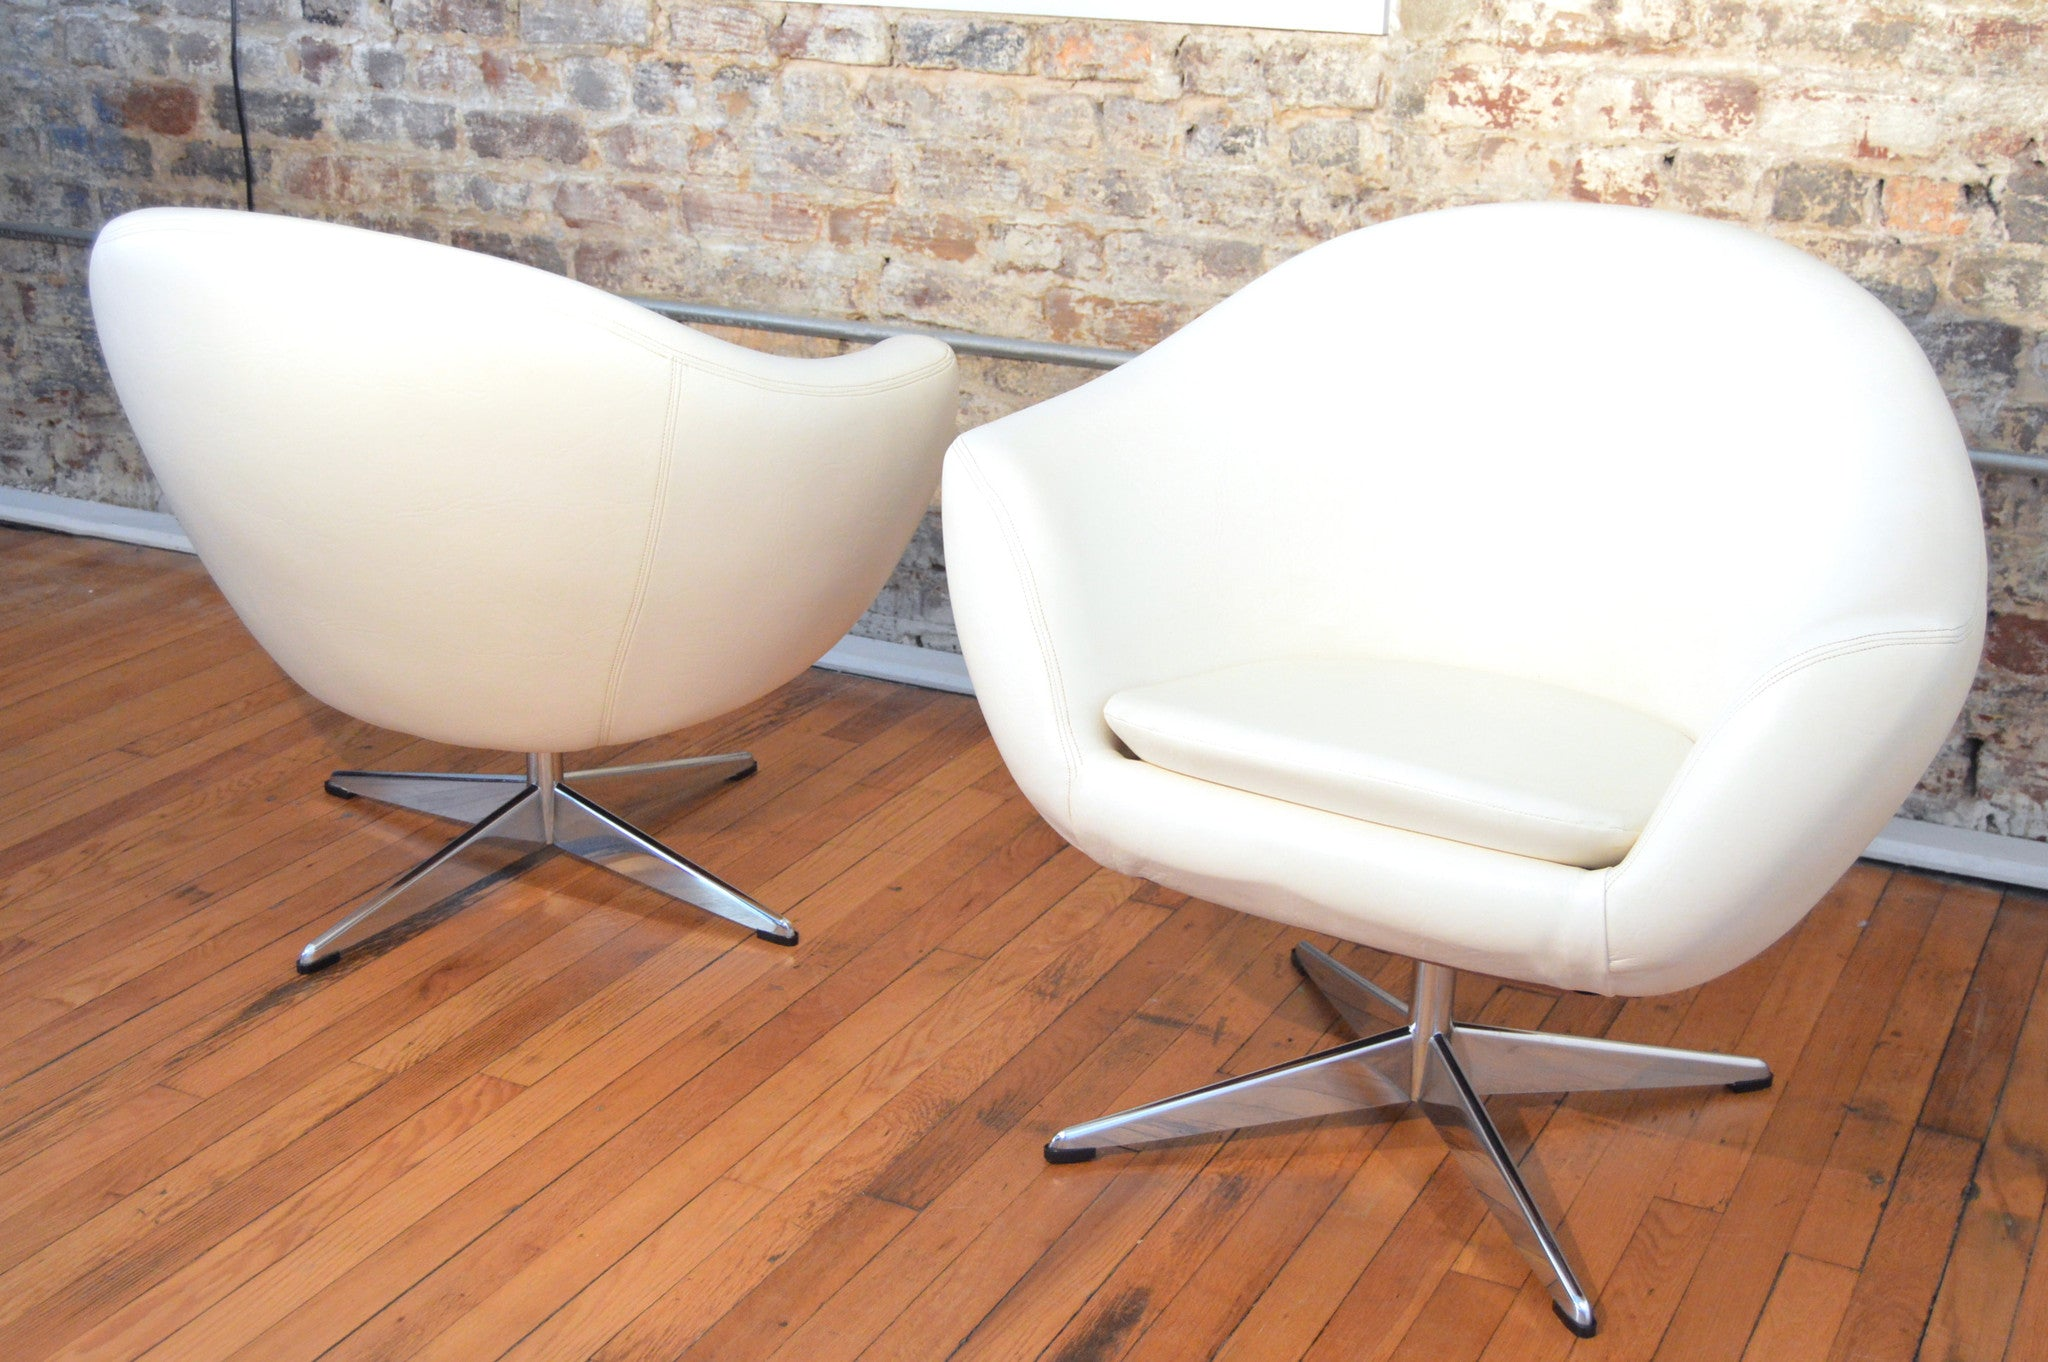 vtg 1940 50s simmons furniture metal medical. Mid Century Modern Space Age White Tub Chairs By Overman Vtg 1940 50s Simmons Furniture Metal Medical B